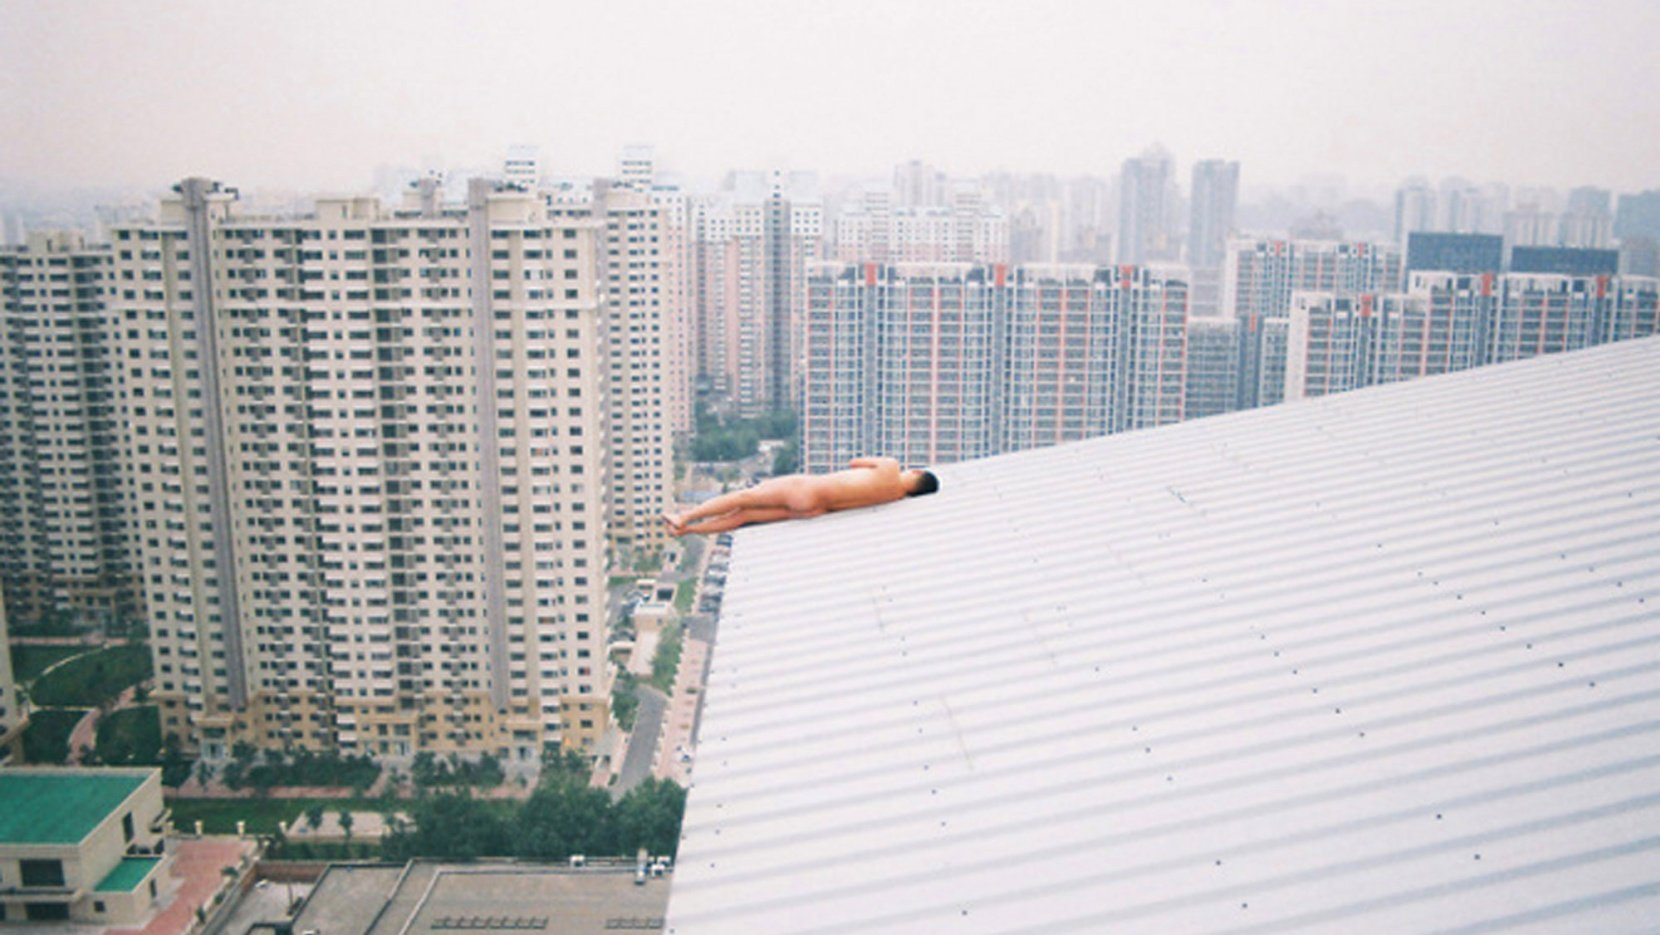 photo © Ren Hang.